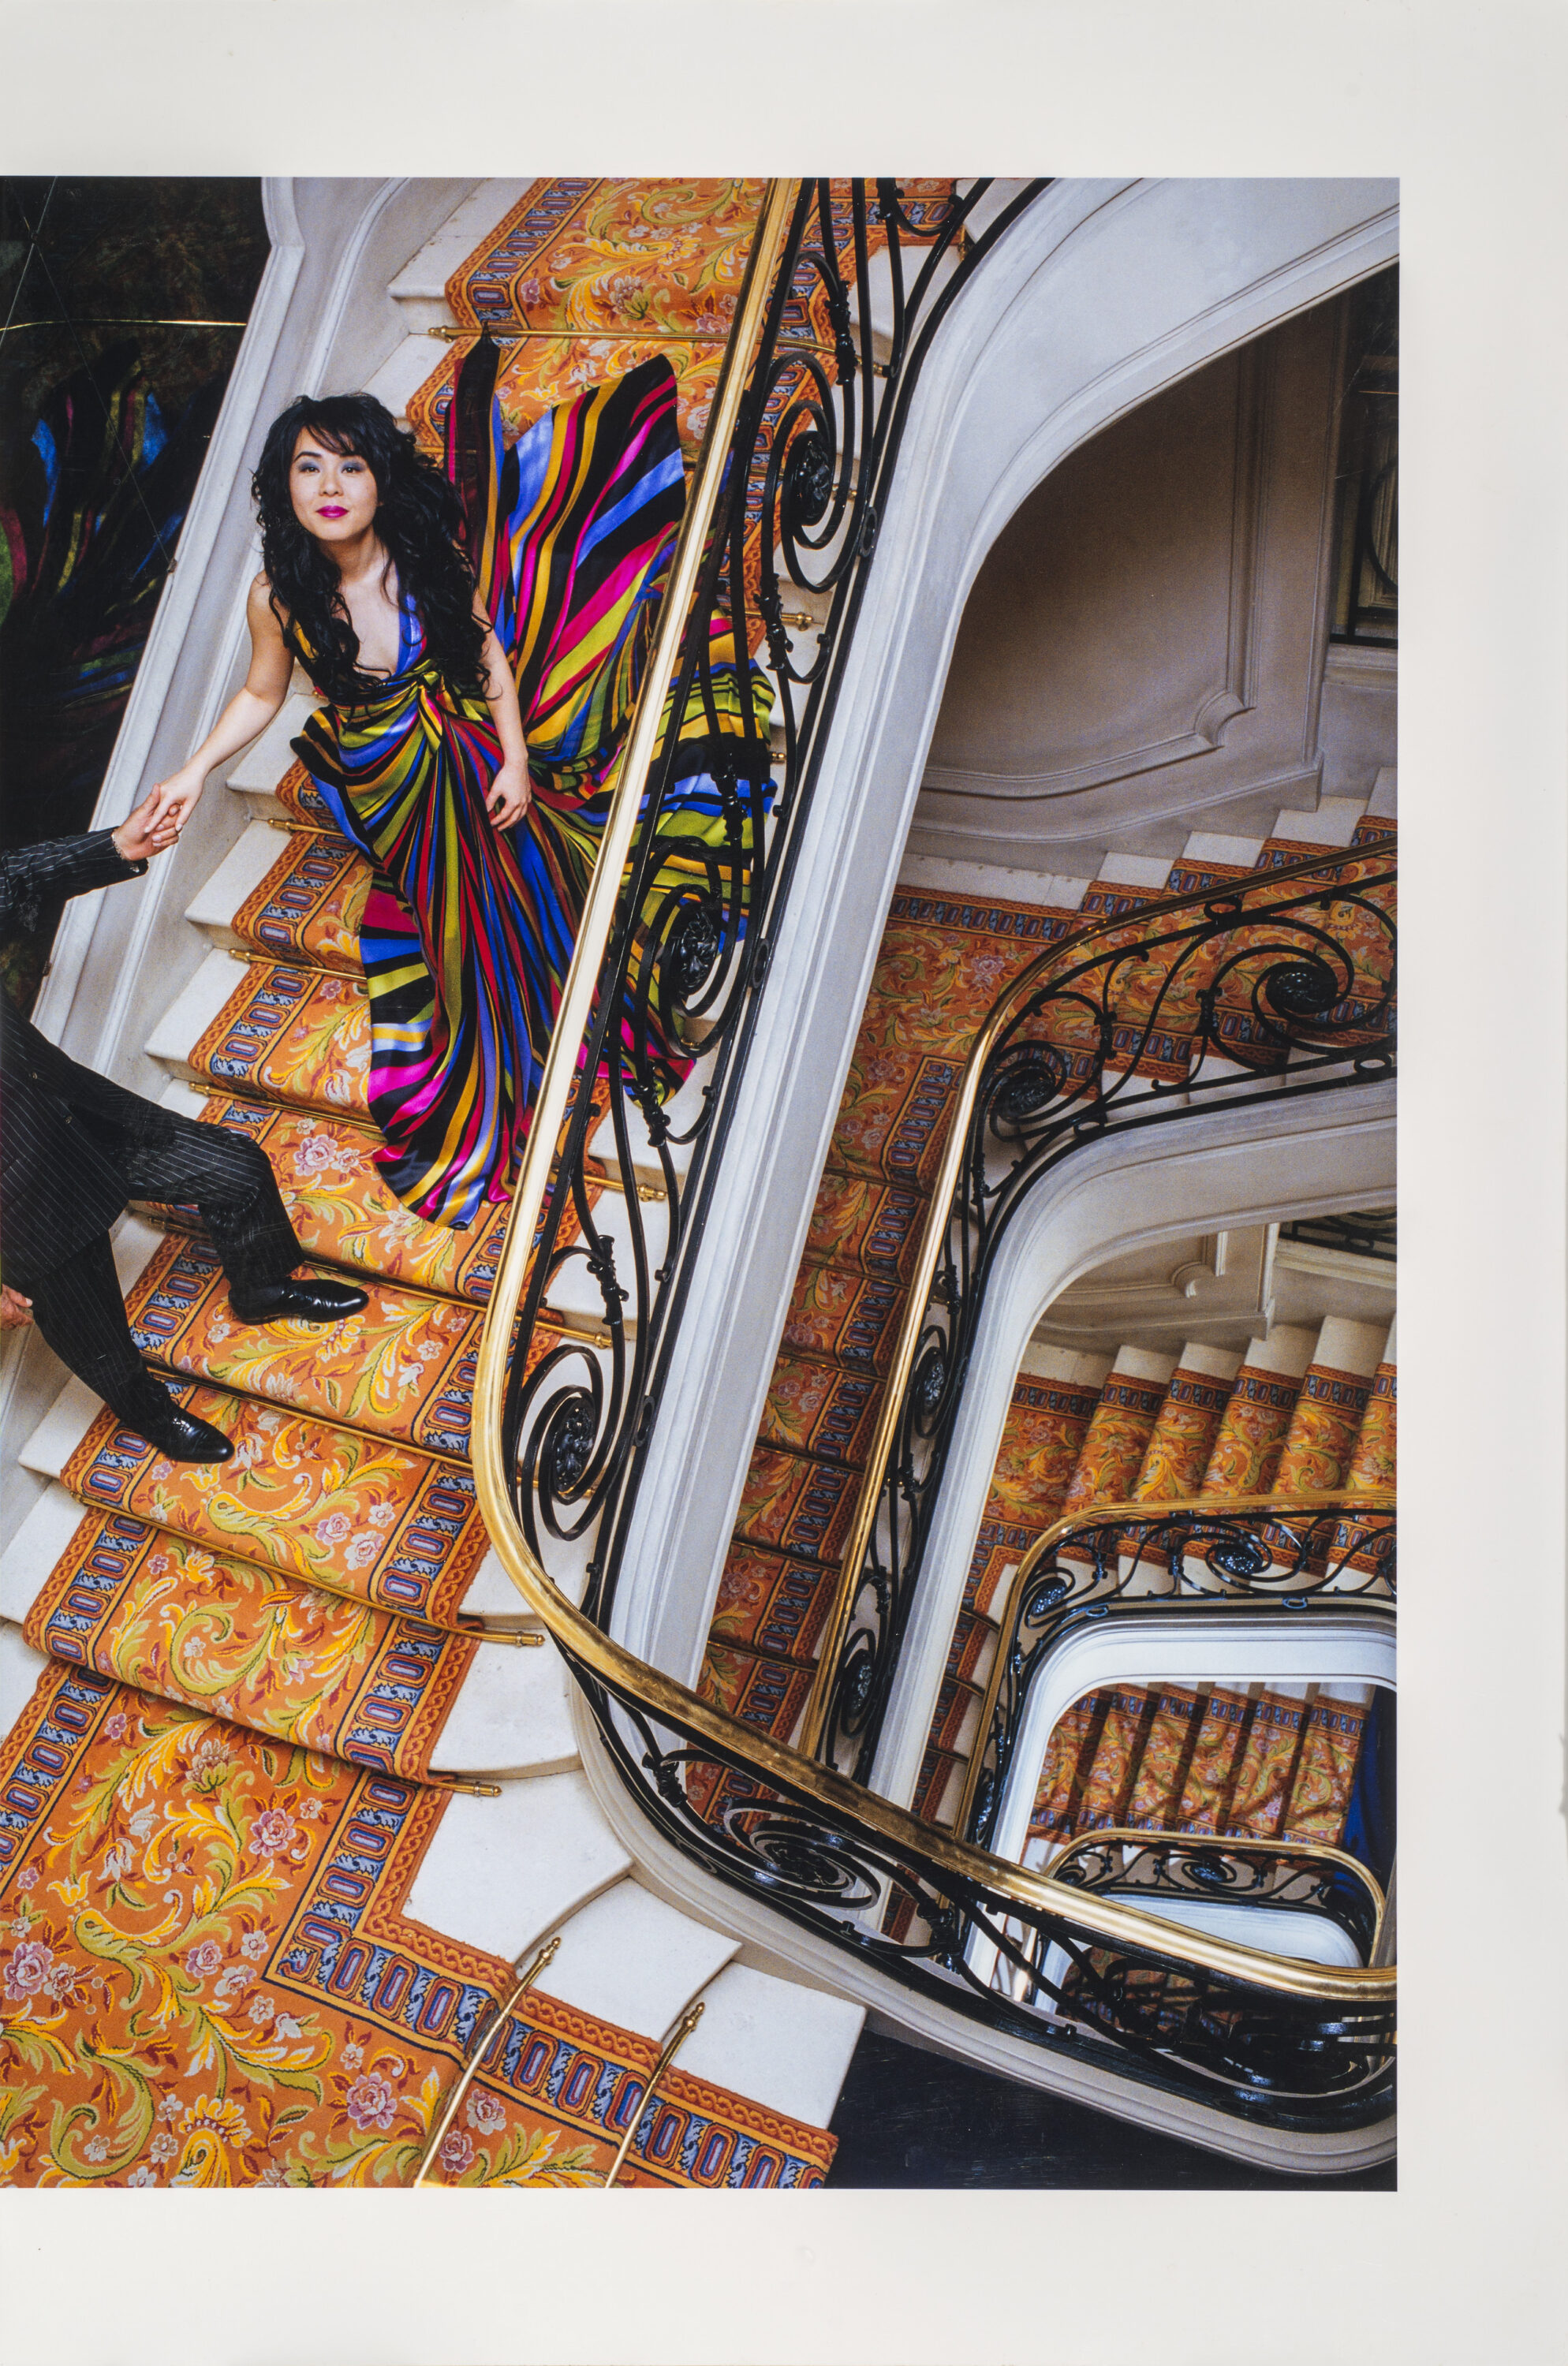 A bird's eye view of a woman with long, dark hair in a brightly-colored gown descending an ornate spiral staircase of white marble and colorfully patterned rug. Her right hand is being held by a figure in a black suit whose head and shoulders are cropped out of the image.